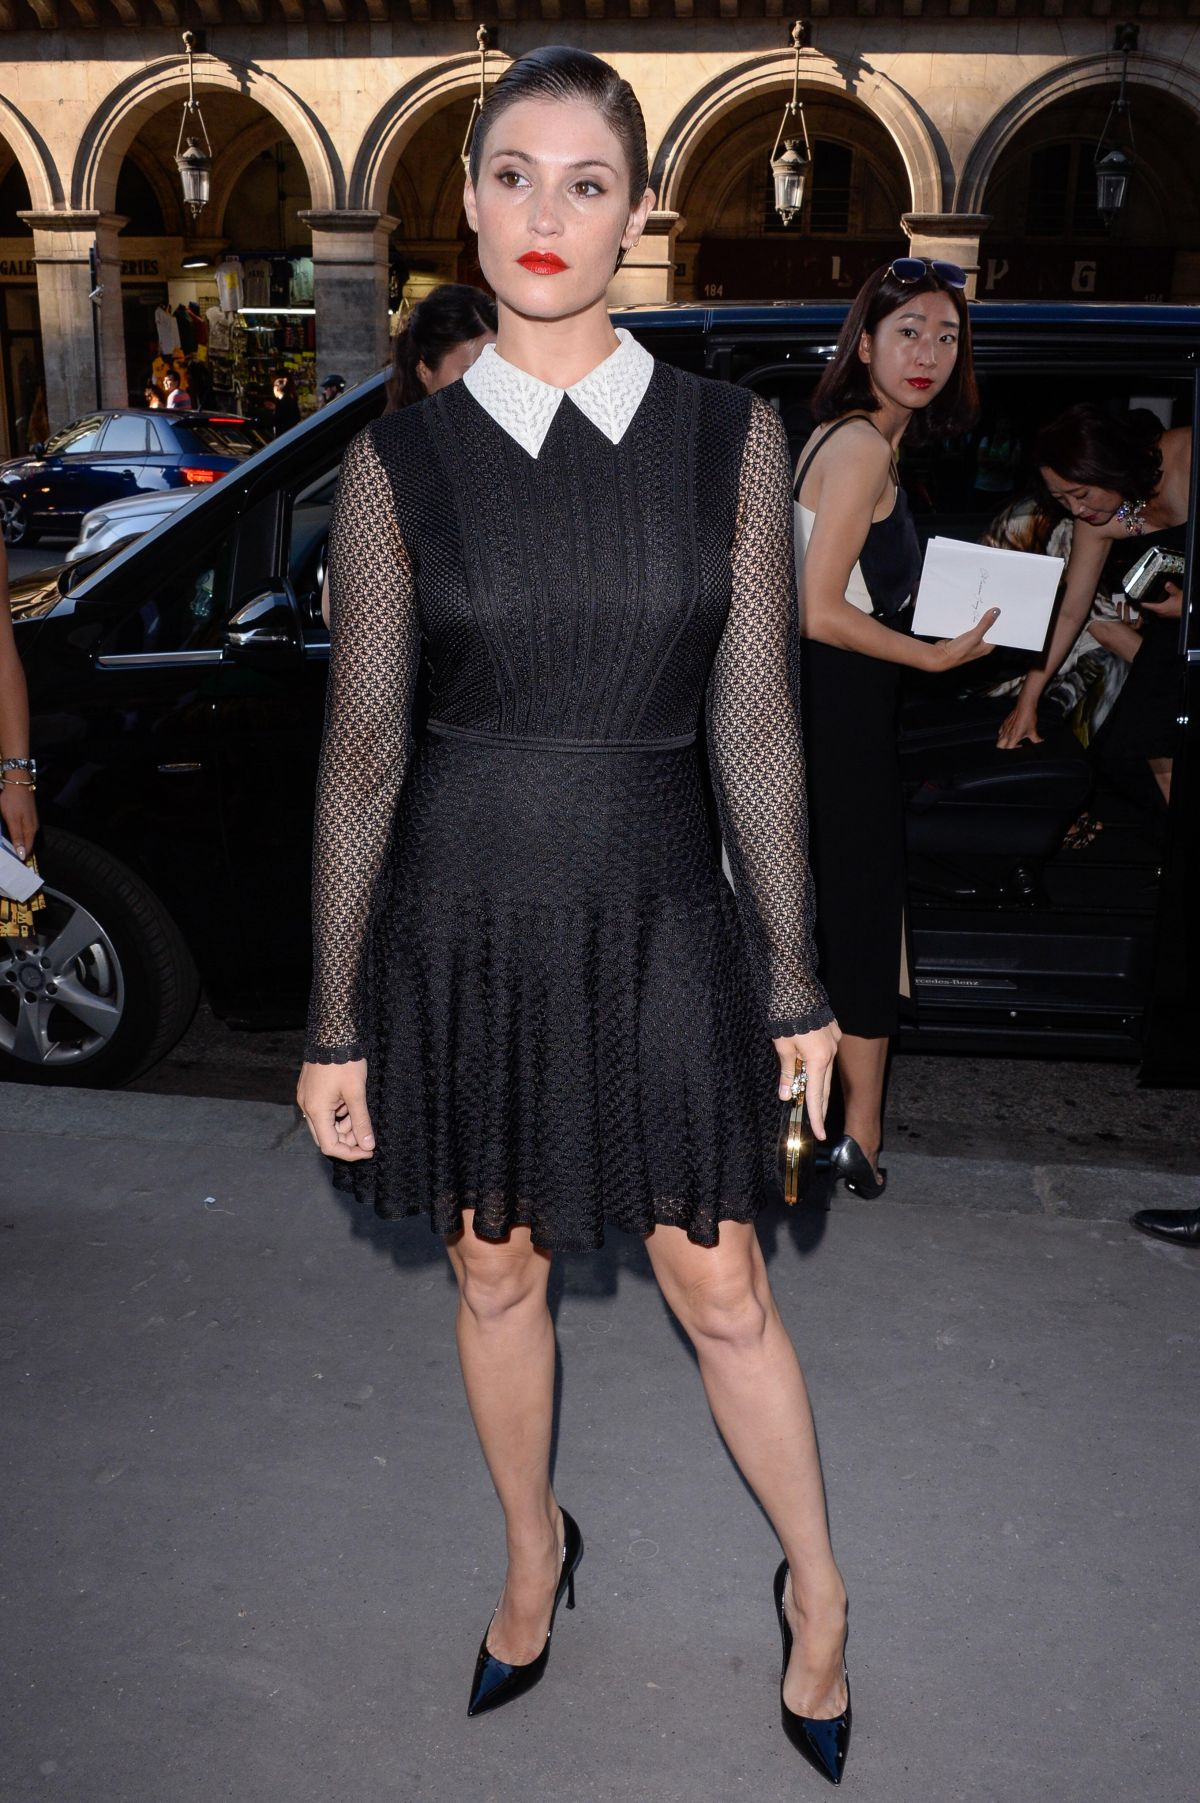 GEMMA ARTERTON Arrives at Christian Dior Exhibition Party in Paris 07/03/2017